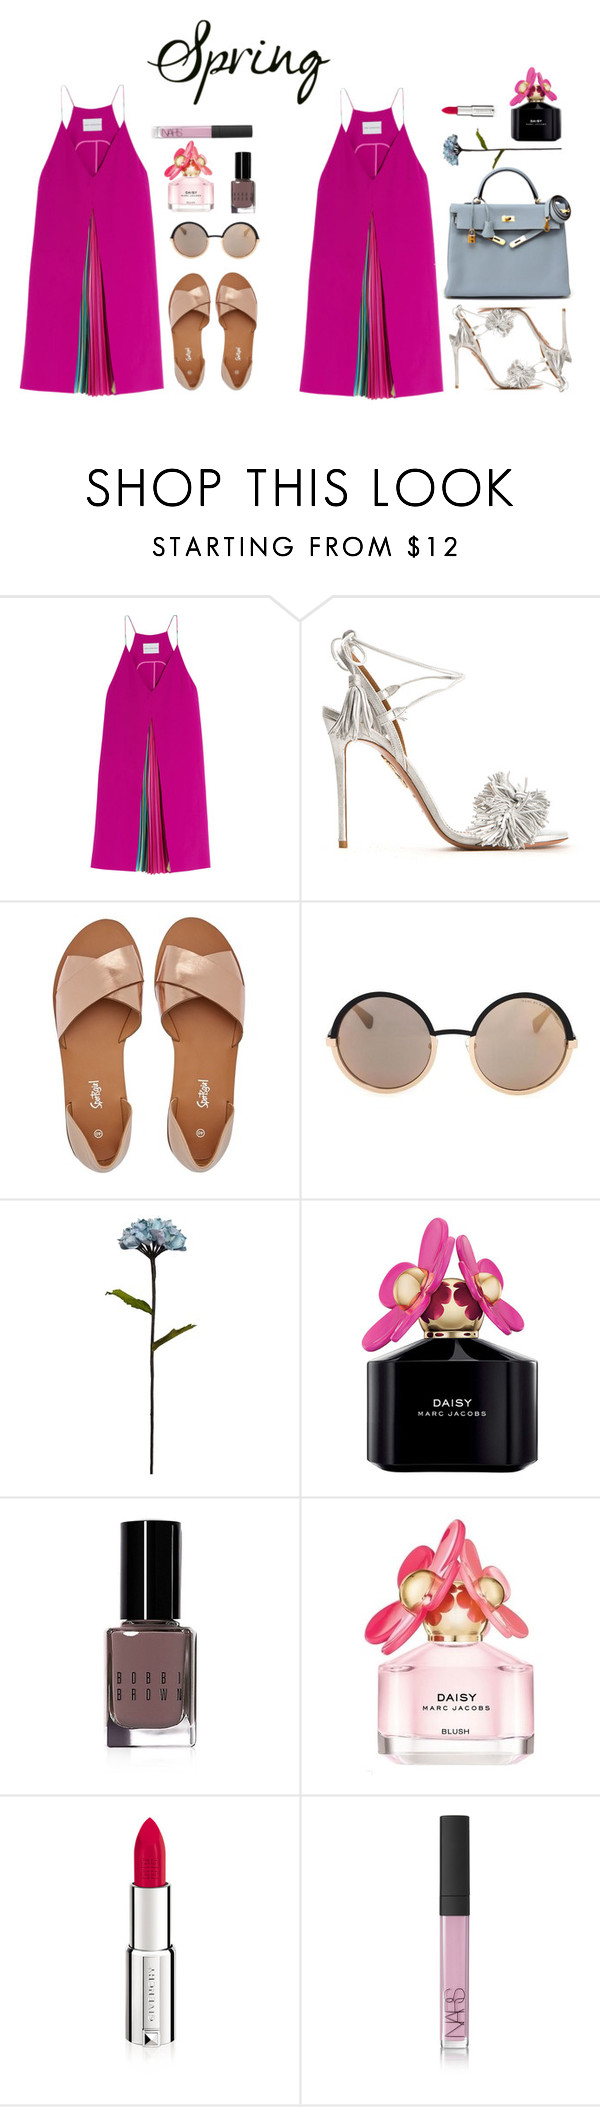 """""""SPRING"""" by marinakoval ❤ liked on Polyvore featuring Mary Katrantzou, Aquazzura, Hermès, Marc by Marc Jacobs, Shabby Chic, Marc Jacobs, Bobbi Brown Cosmetics, Givenchy, NARS Cosmetics and Spring"""